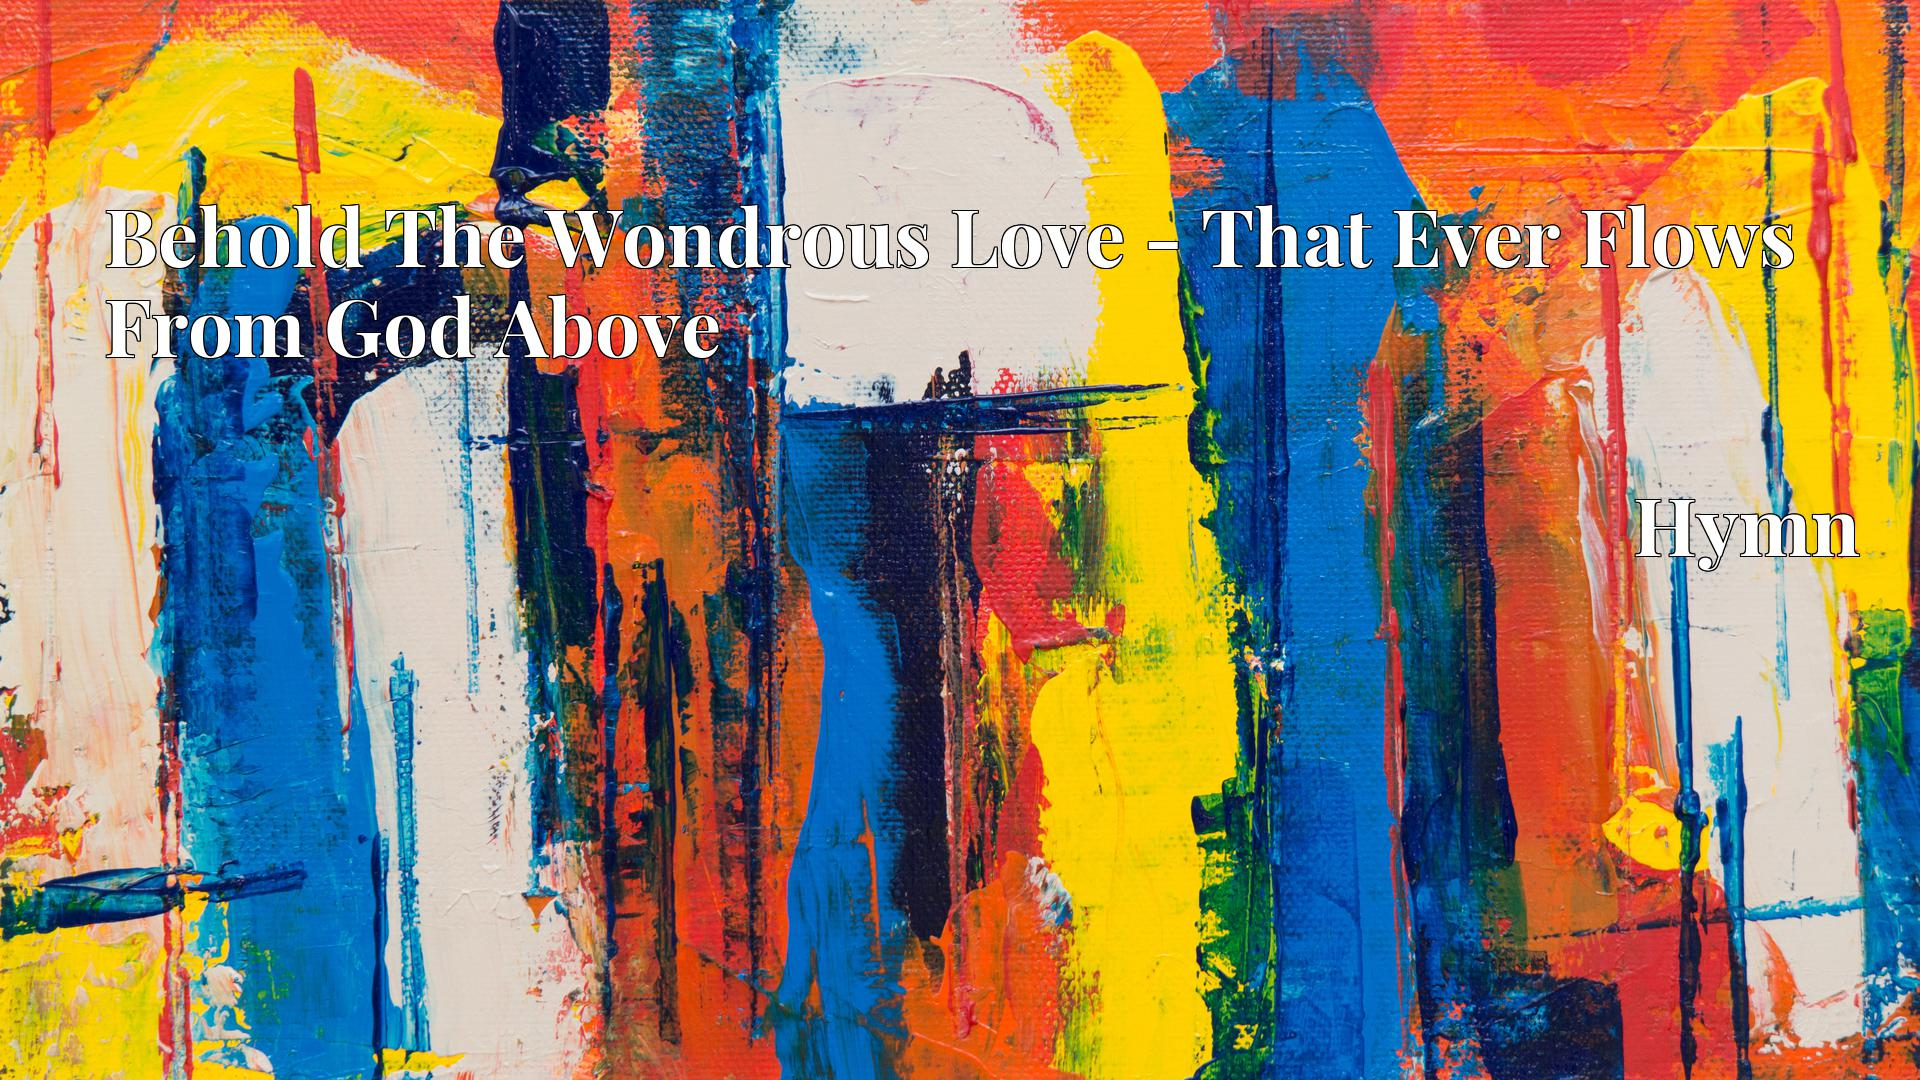 Behold The Wondrous Love - That Ever Flows From God Above Hymn